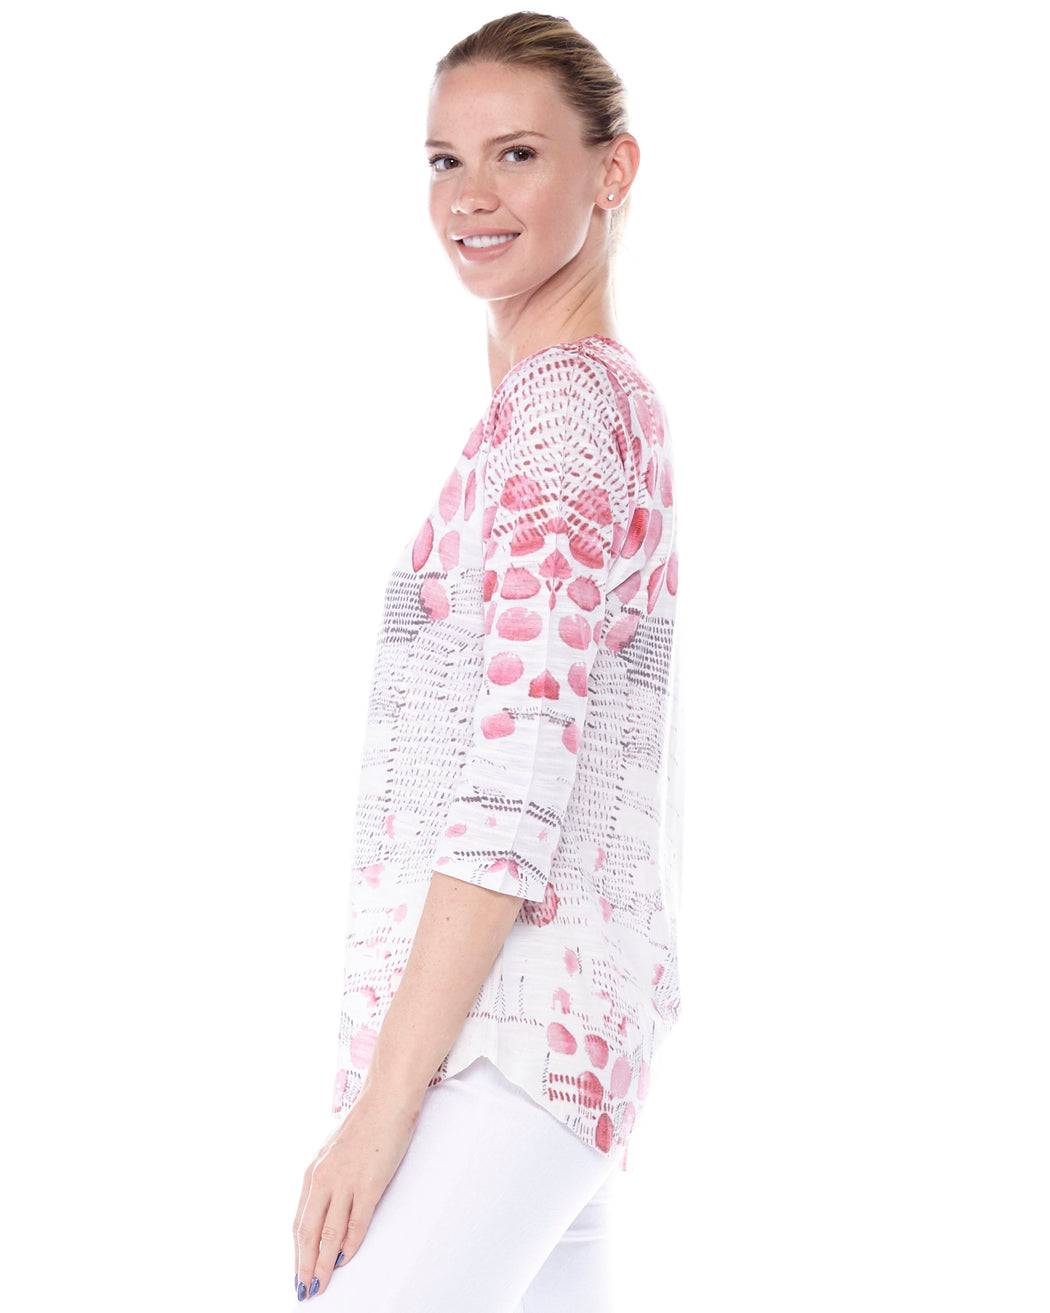 Tunic 2 in Rose Petals Print - Atelier5